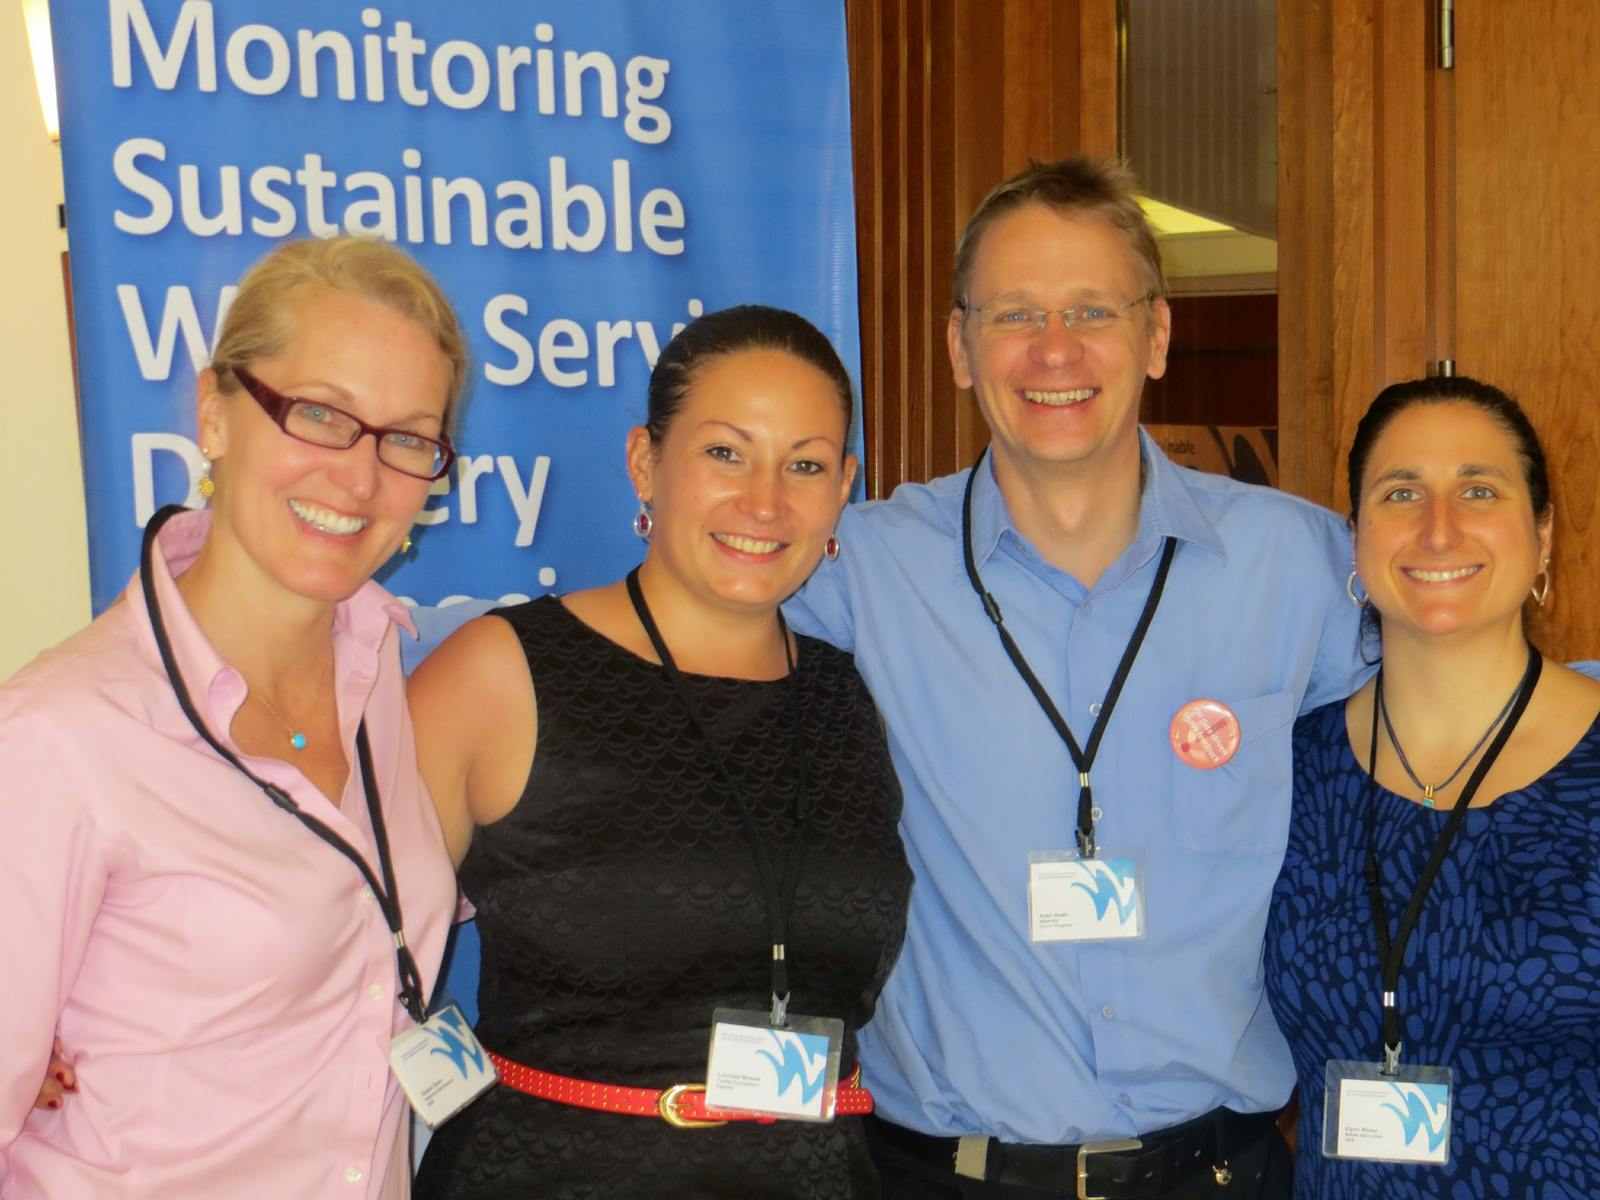 Monitoring as the Key to Sustainable Development